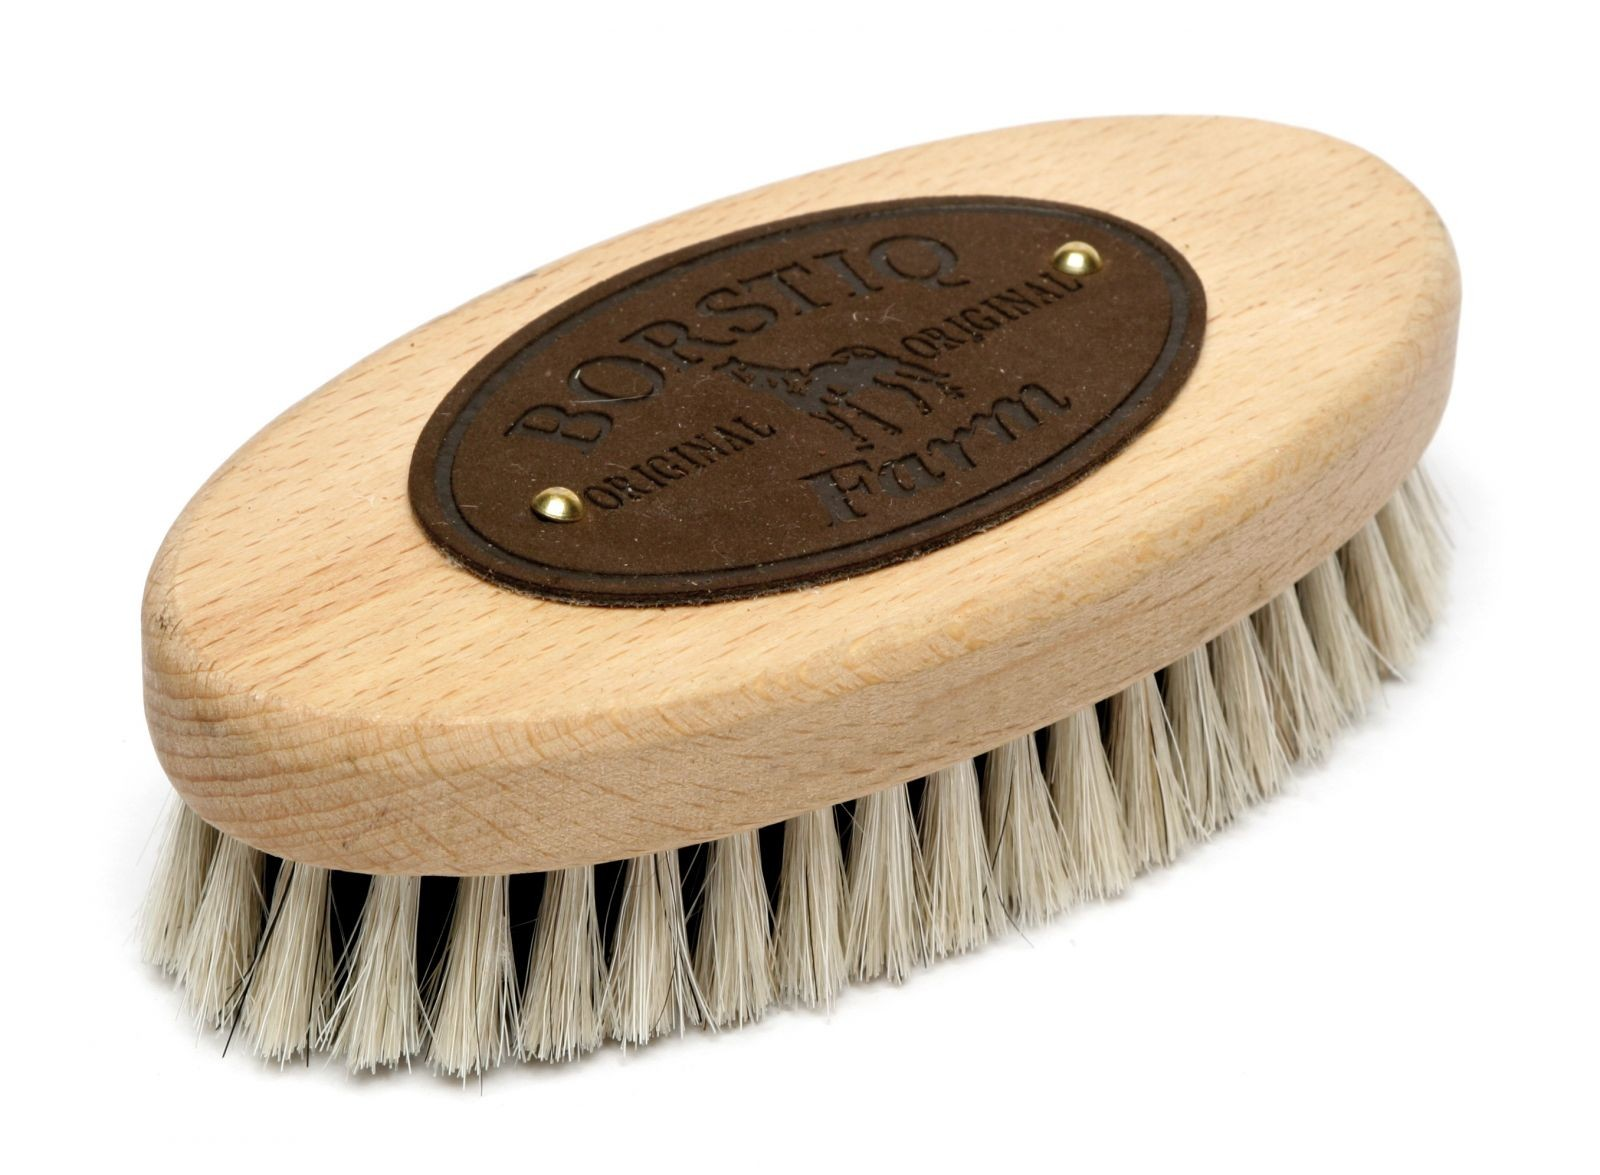 Borstiq Bodybrush (without strap)